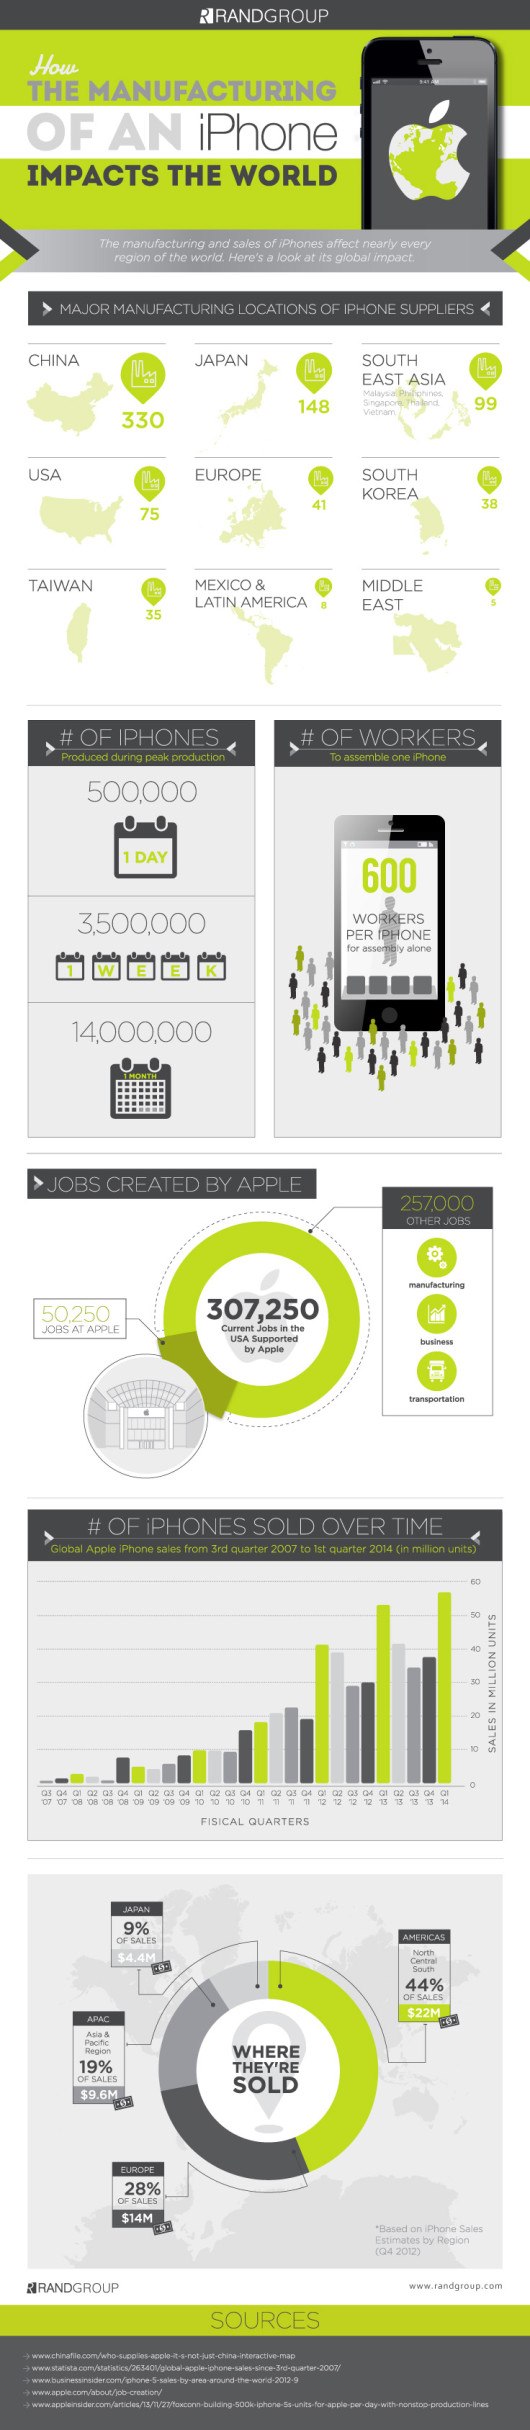 iPhone-manufacturing-infographic